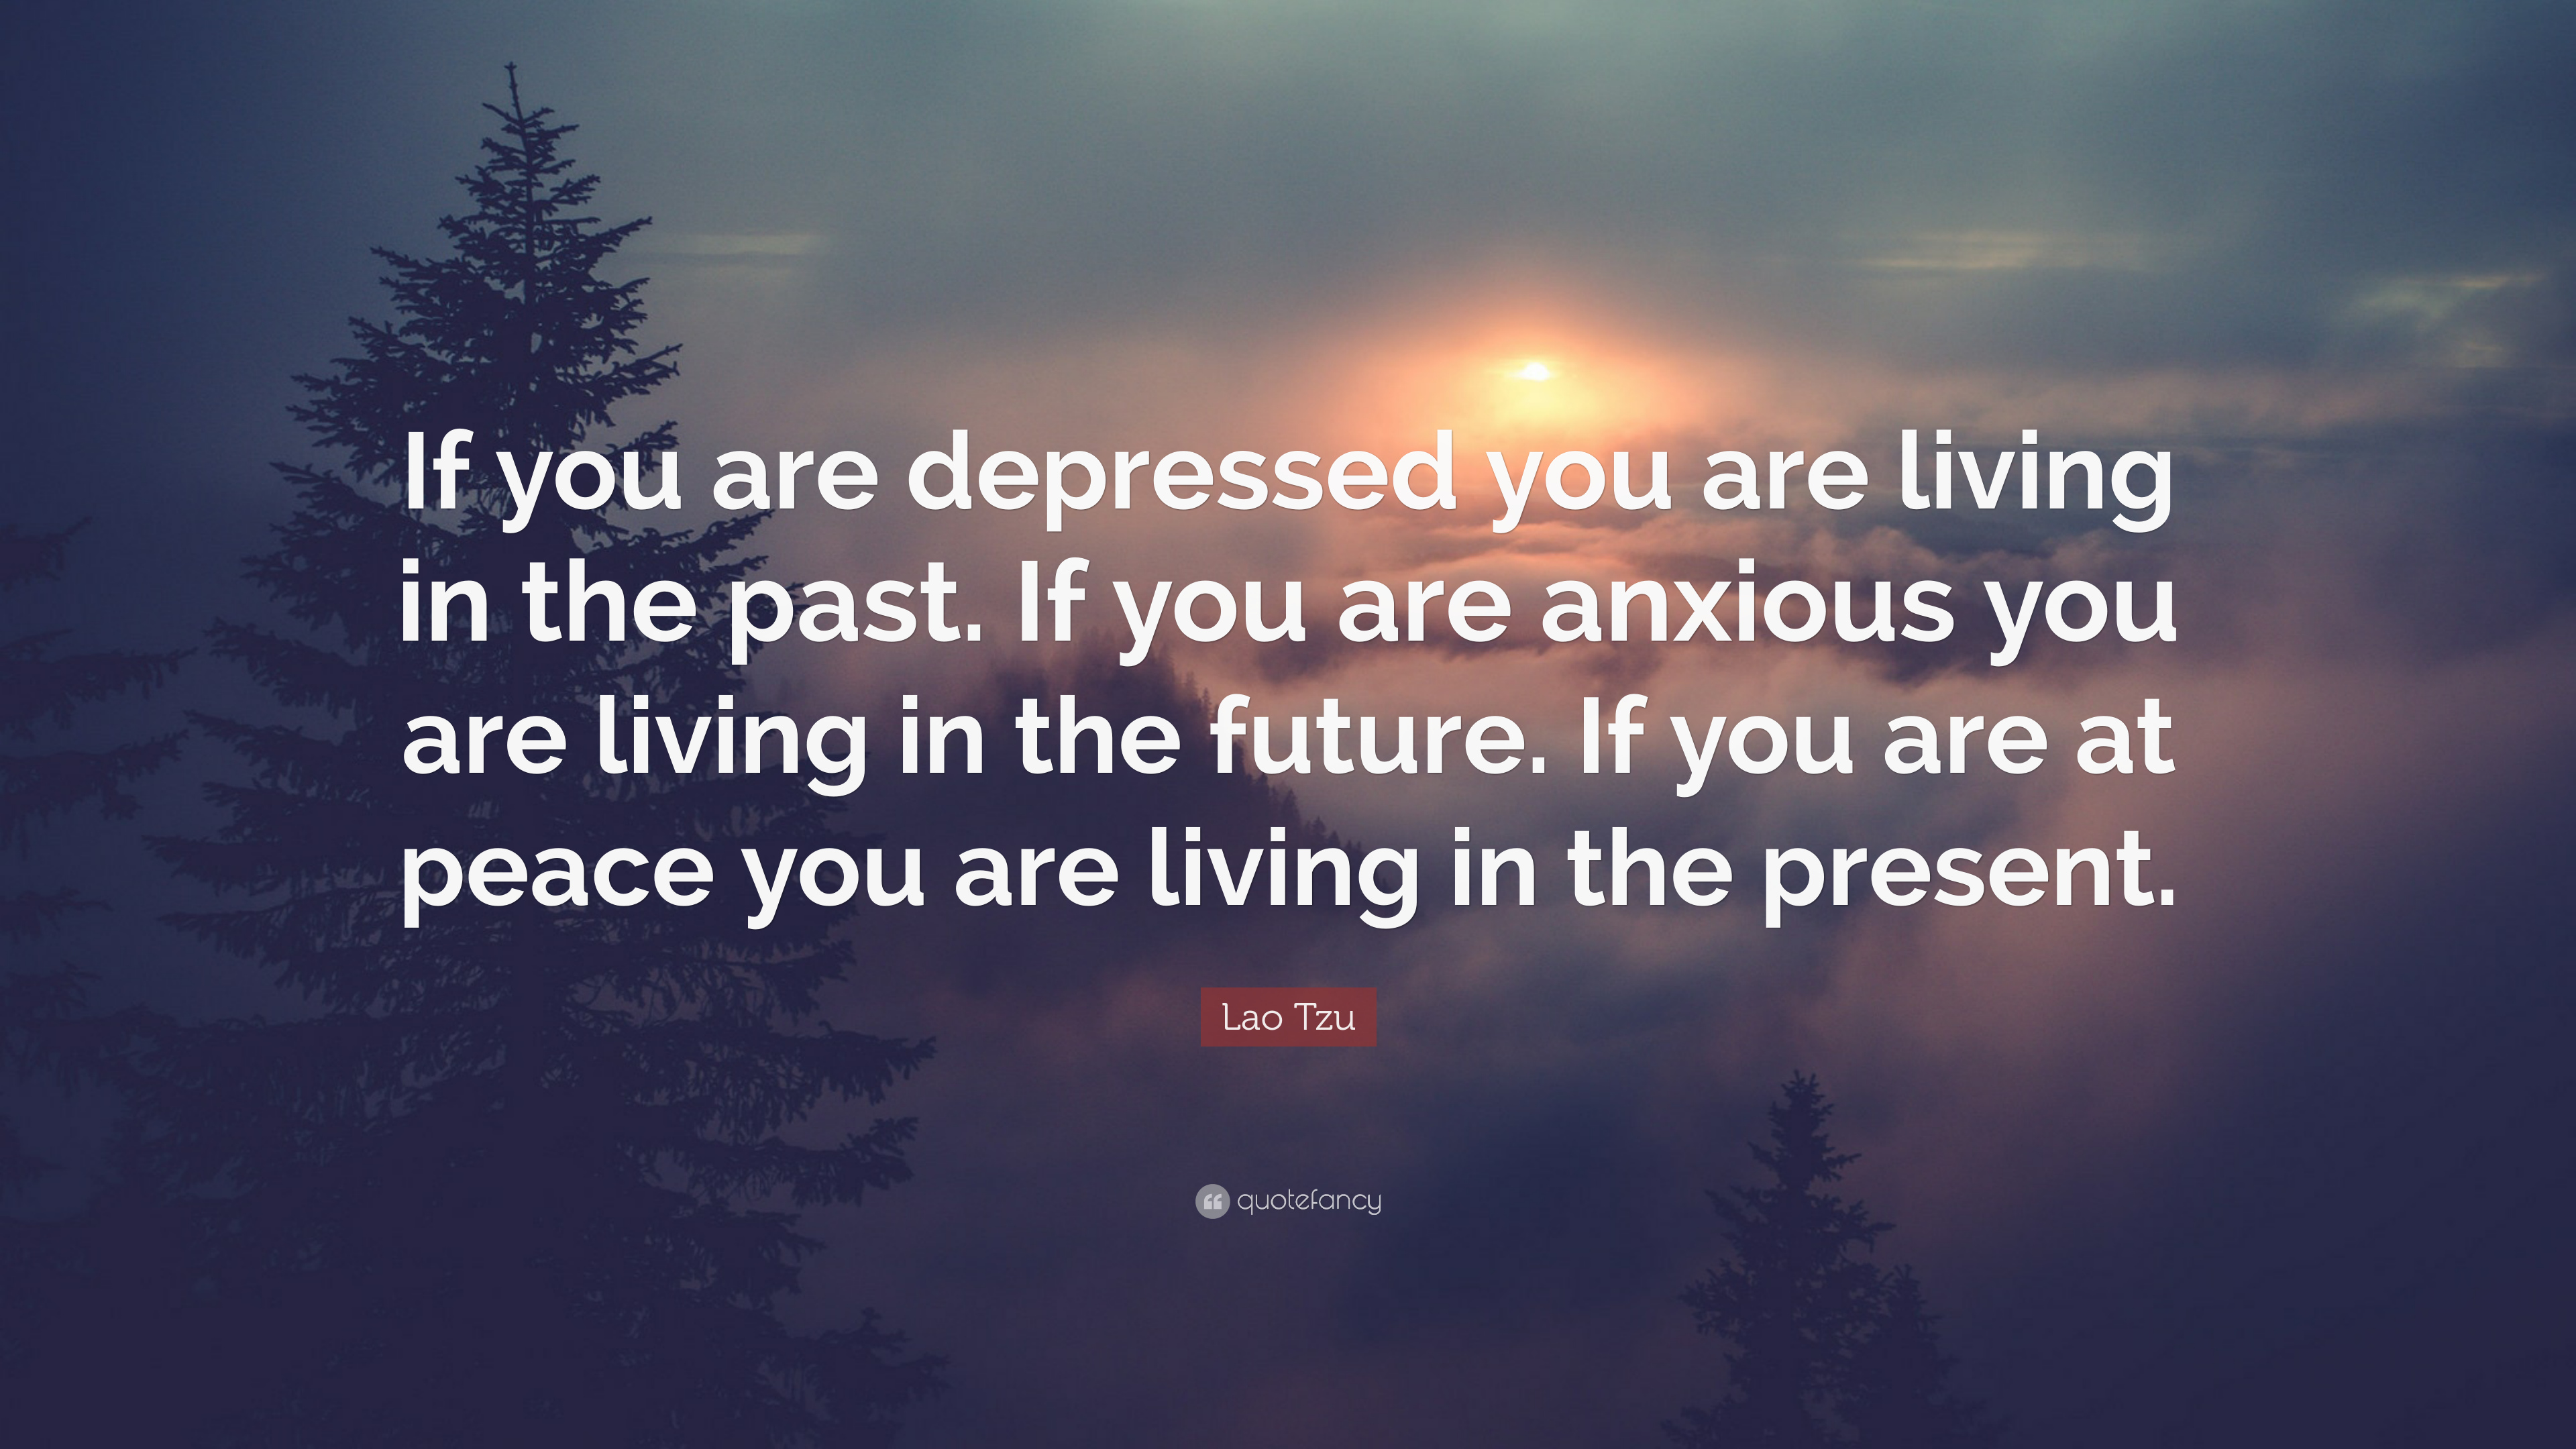 Lonely Lao Tzu Quote if You Are Depressed You Are Living In The Past Quotefancy Lao Tzu Quote if You Are Depressed You Are Living In The Past If